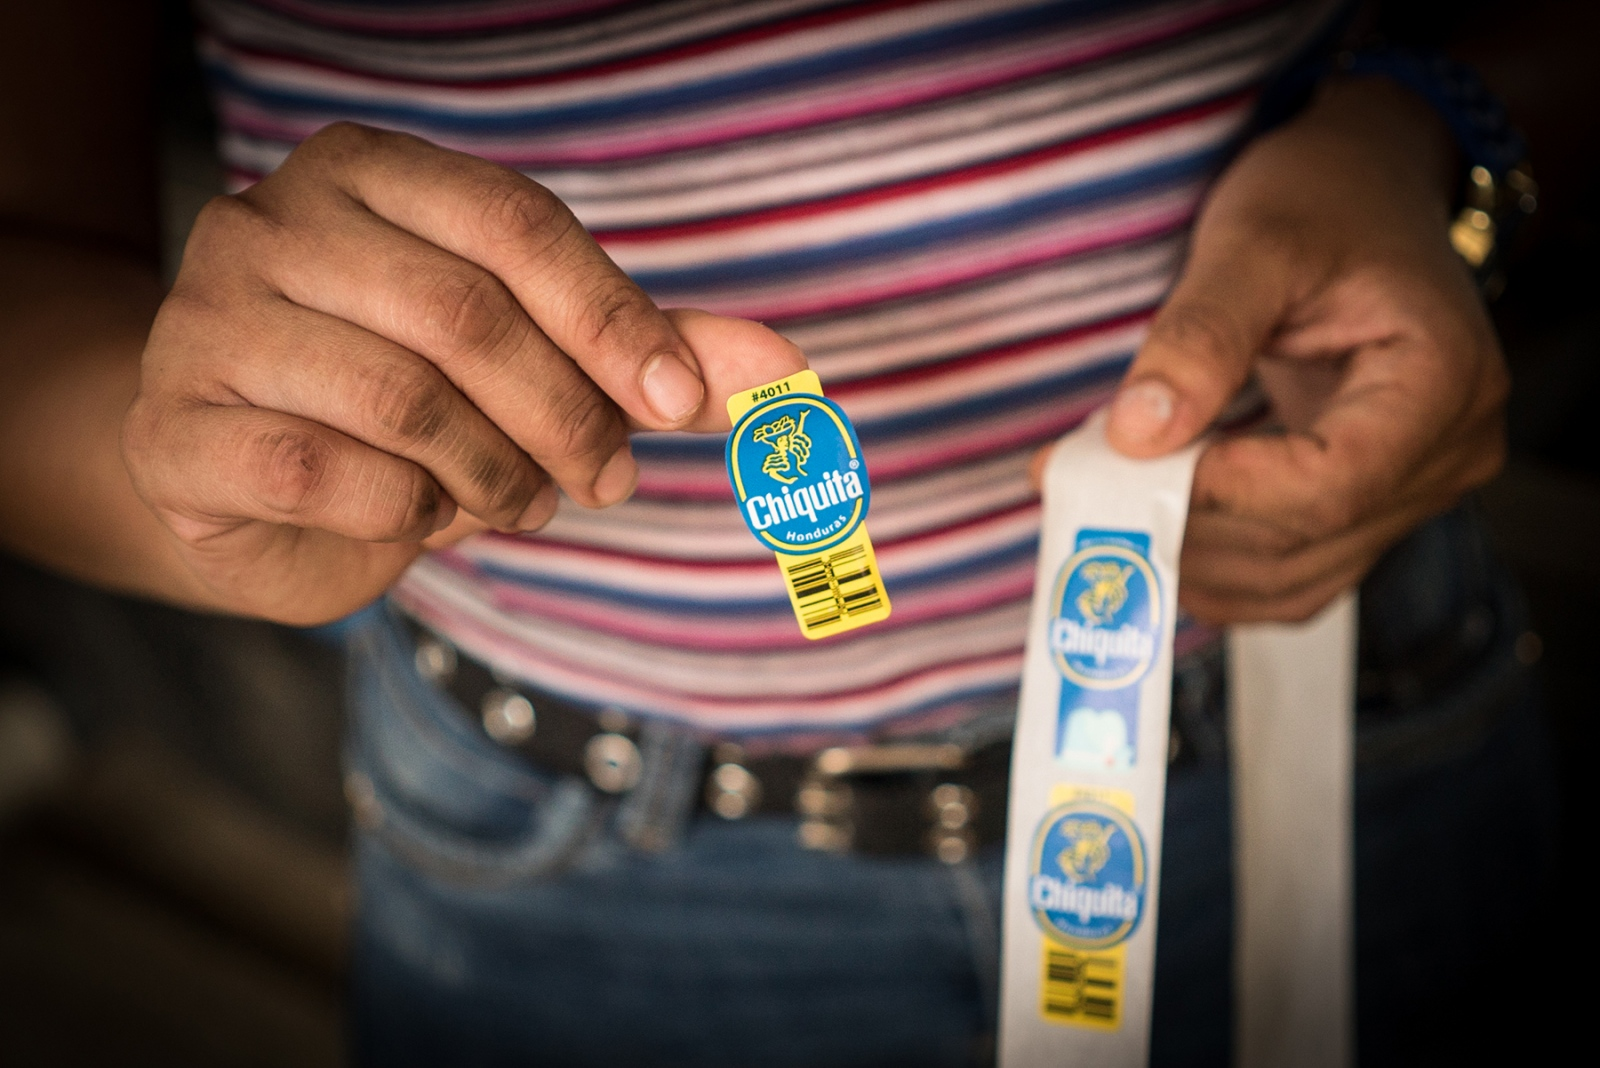 A worker handles the Chiquita stickers used on produce to be shipped overseas, mainly to the United States. The exploitation of Chiquita employees allows for cheaper prices for bananas in U.S. supermarkets, but the workers hope consumers will continue to buy. The fewer bananas foreign consumers buy, they explained, the more chances Honduran farmers have of losing their jobs.